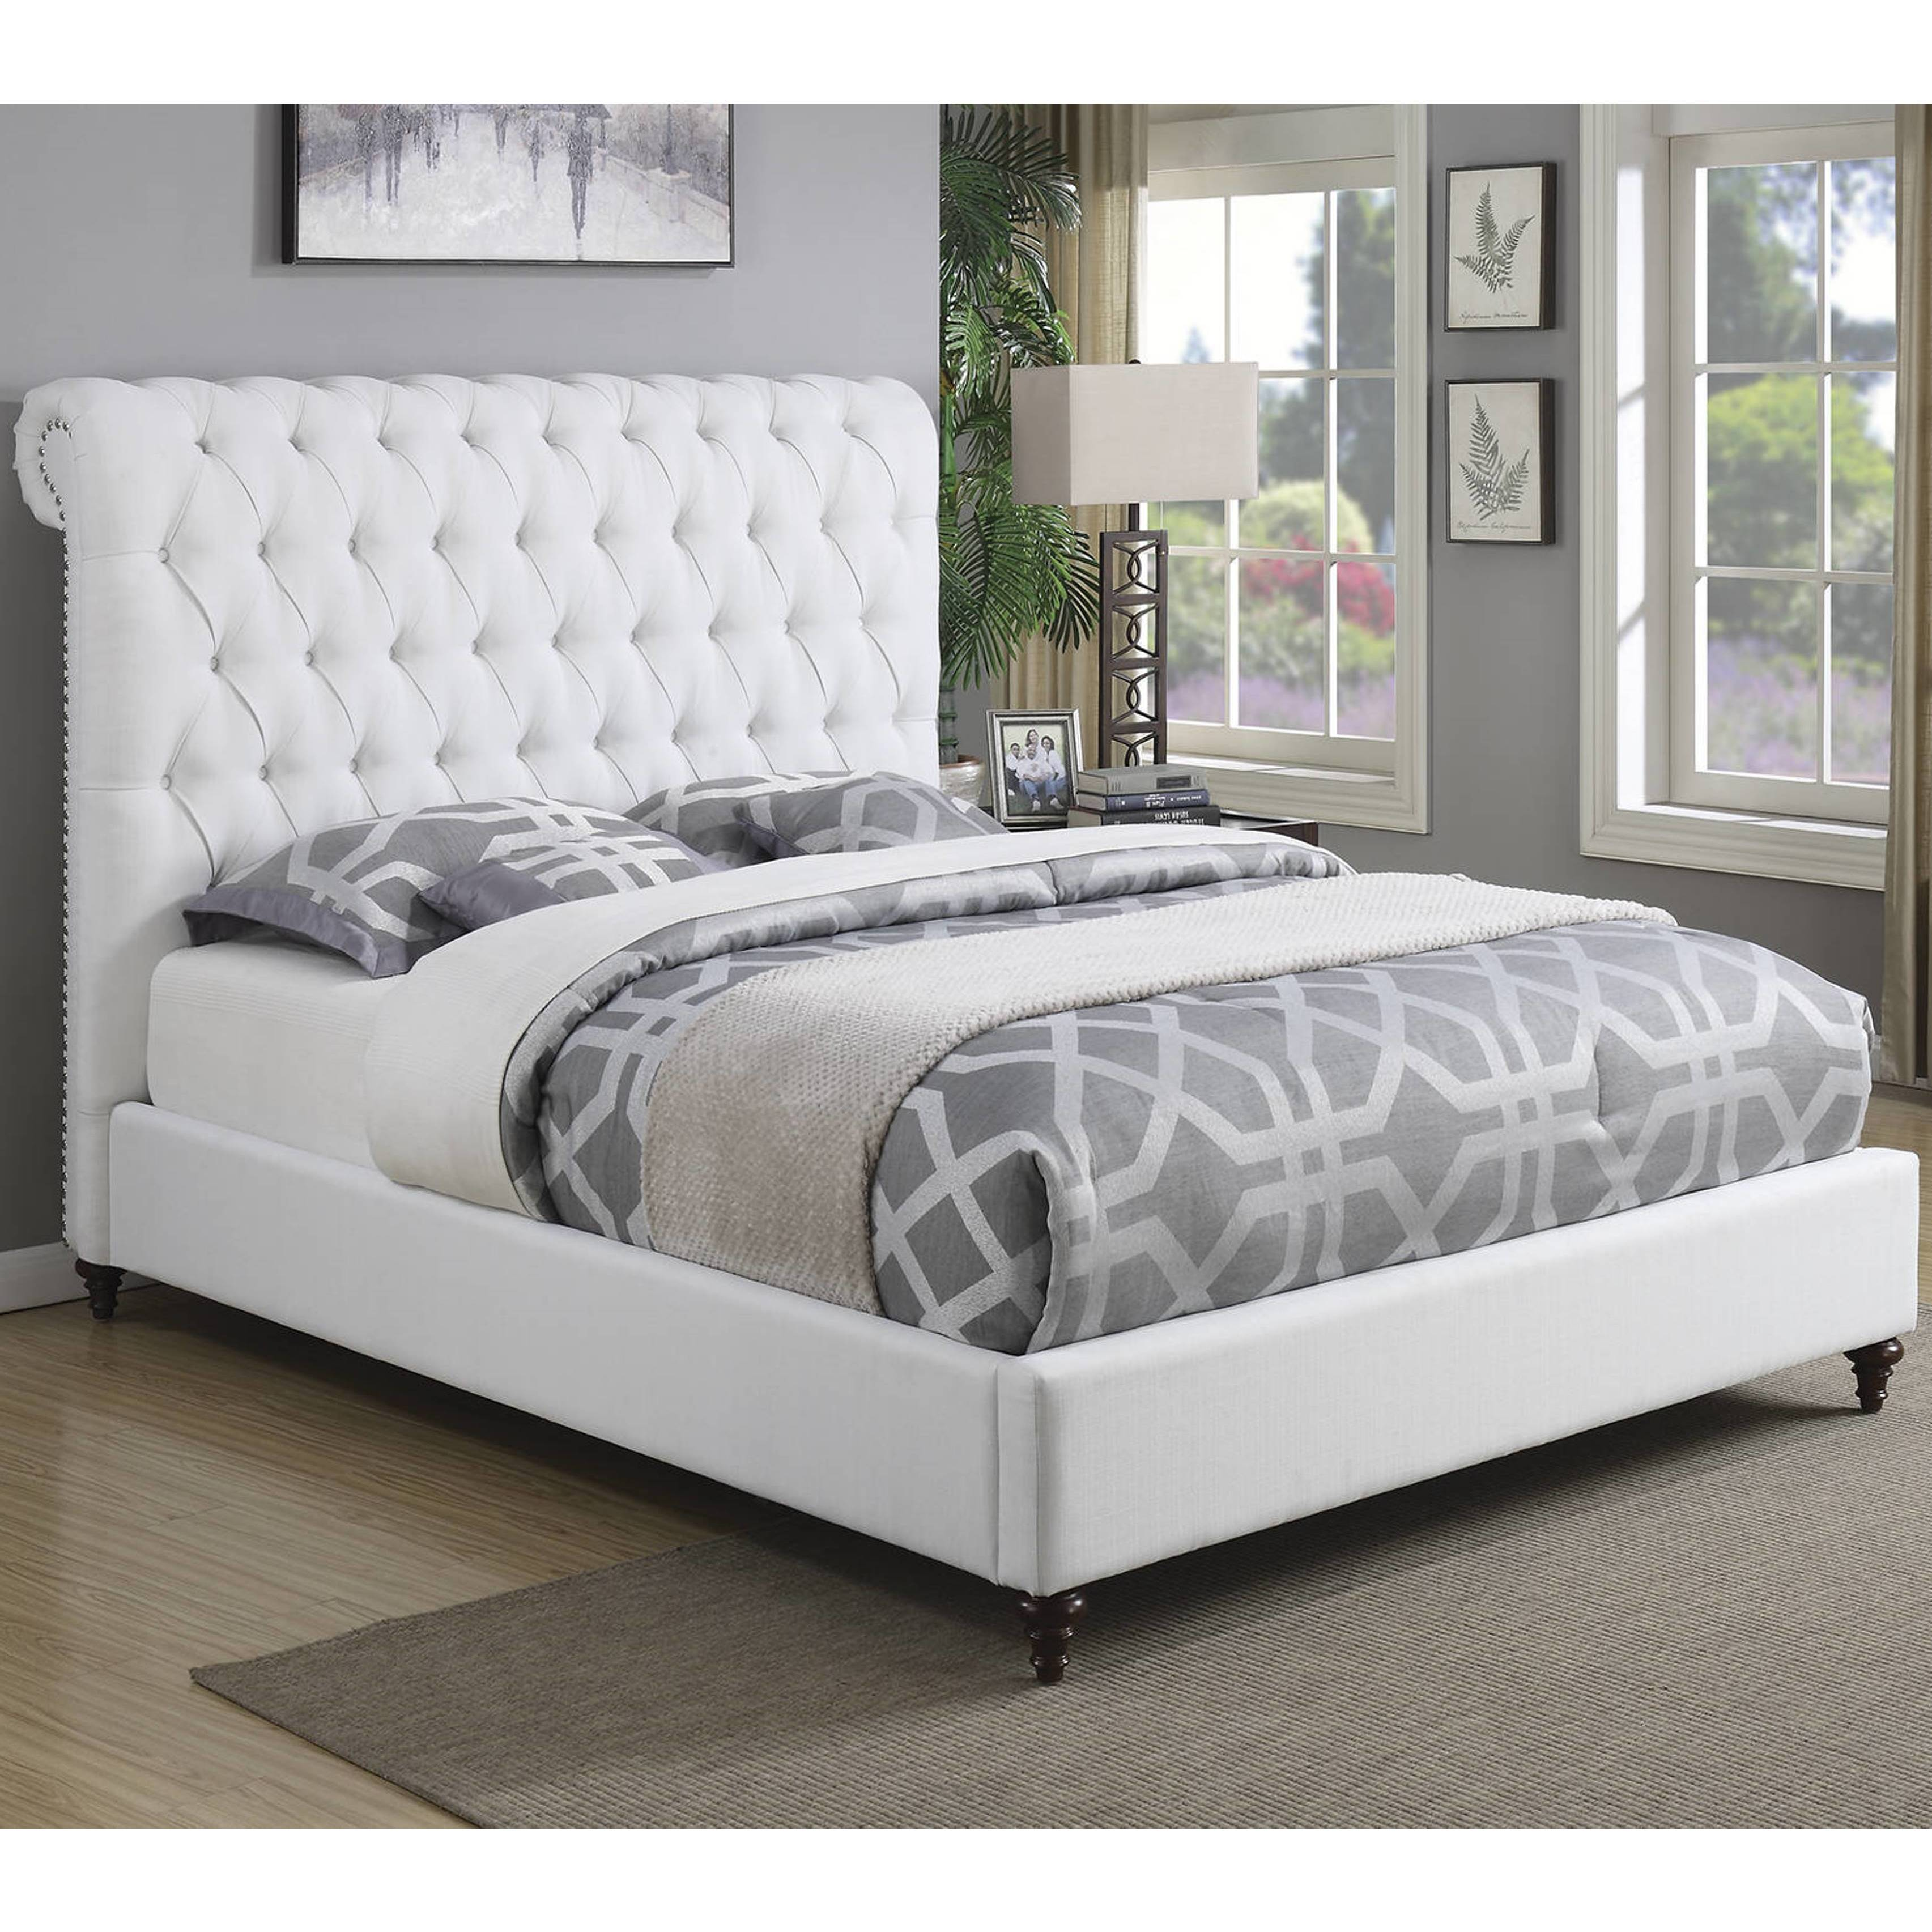 grace garden by with bold trim overstock home tufted free headboard today product button fabric nailhead inspire q shipping